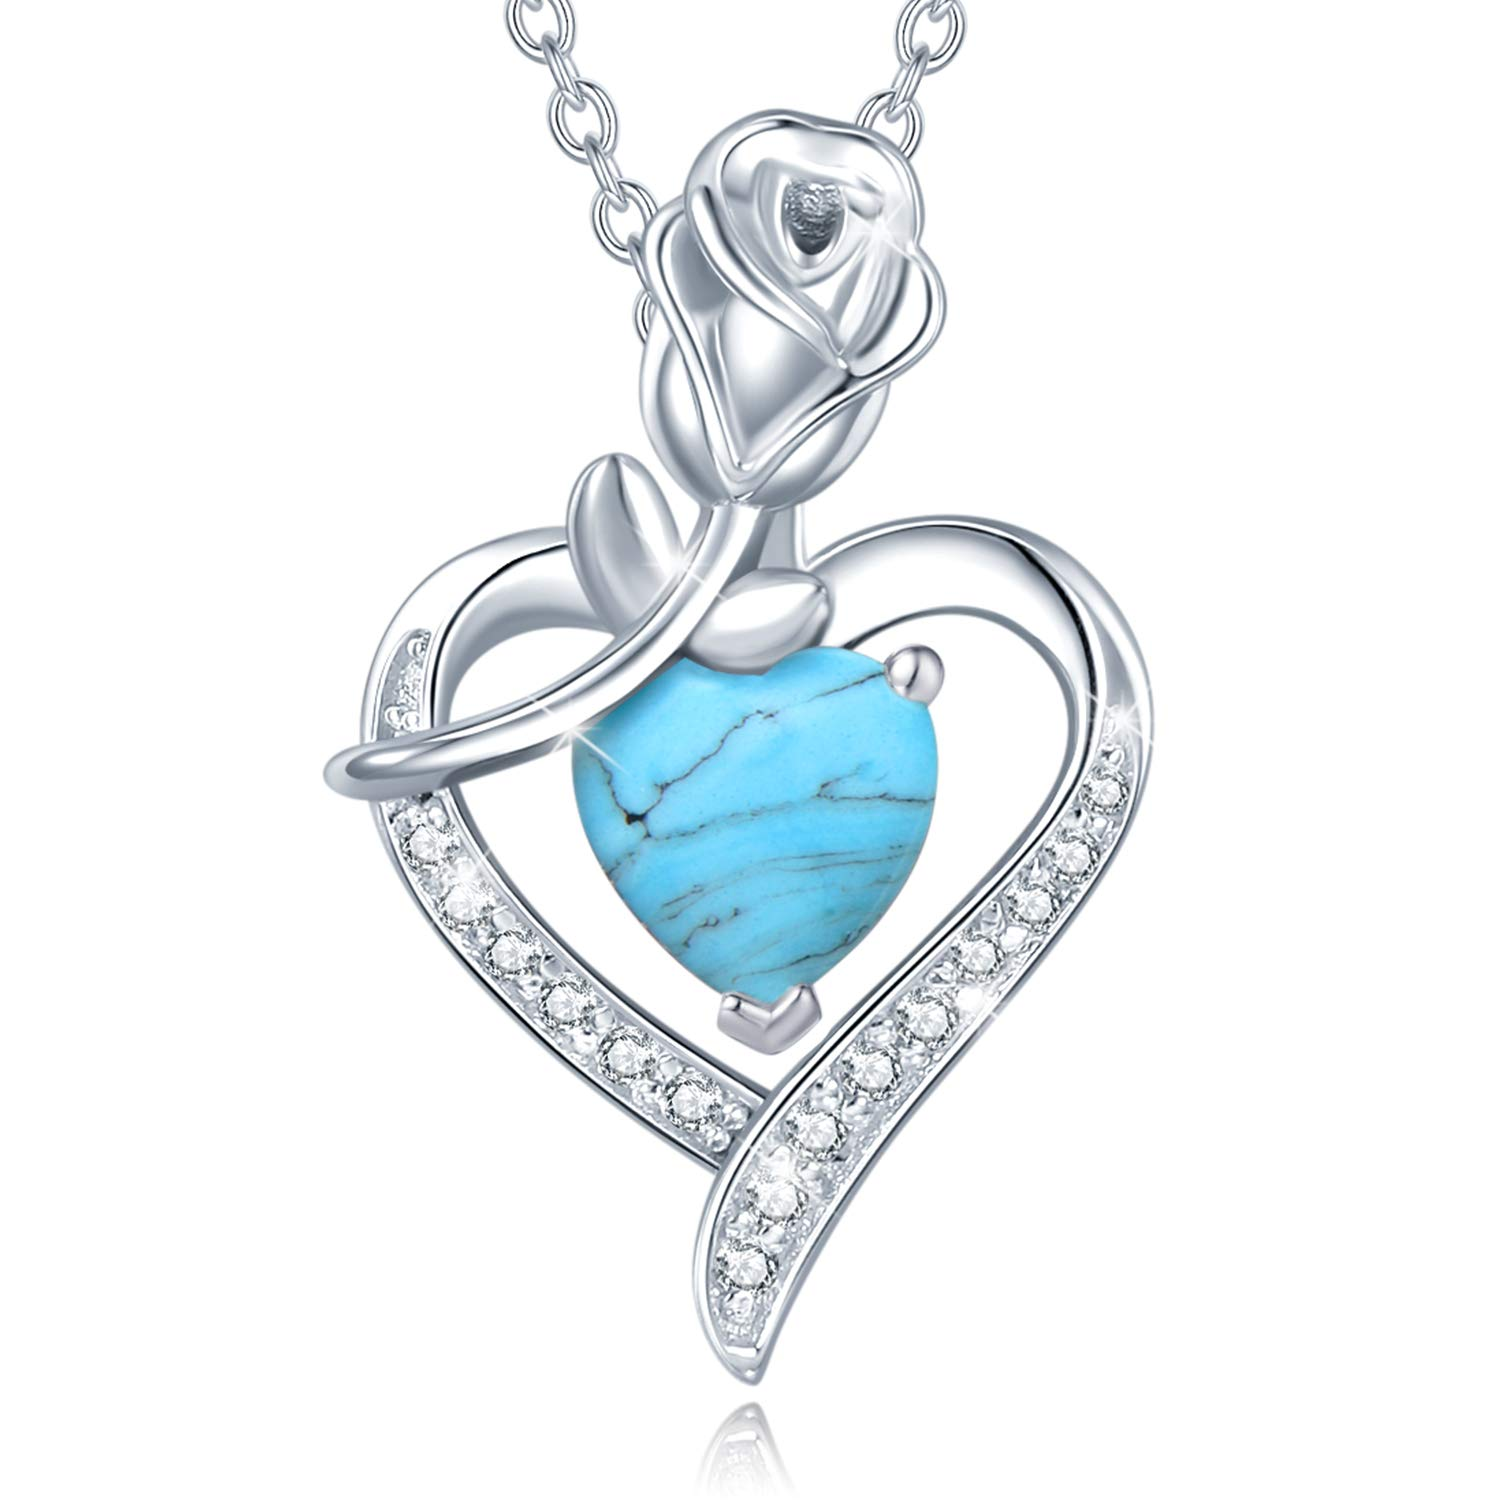 Mothers Day Gifts Fine Jewelry Birthstone Necklaces for Women Sterling Silver Genuine or Created Gemstone Rose Flower Heart Pendant Necklace Gifts for Mom Anniversary Birthday Gifts for Girls Her